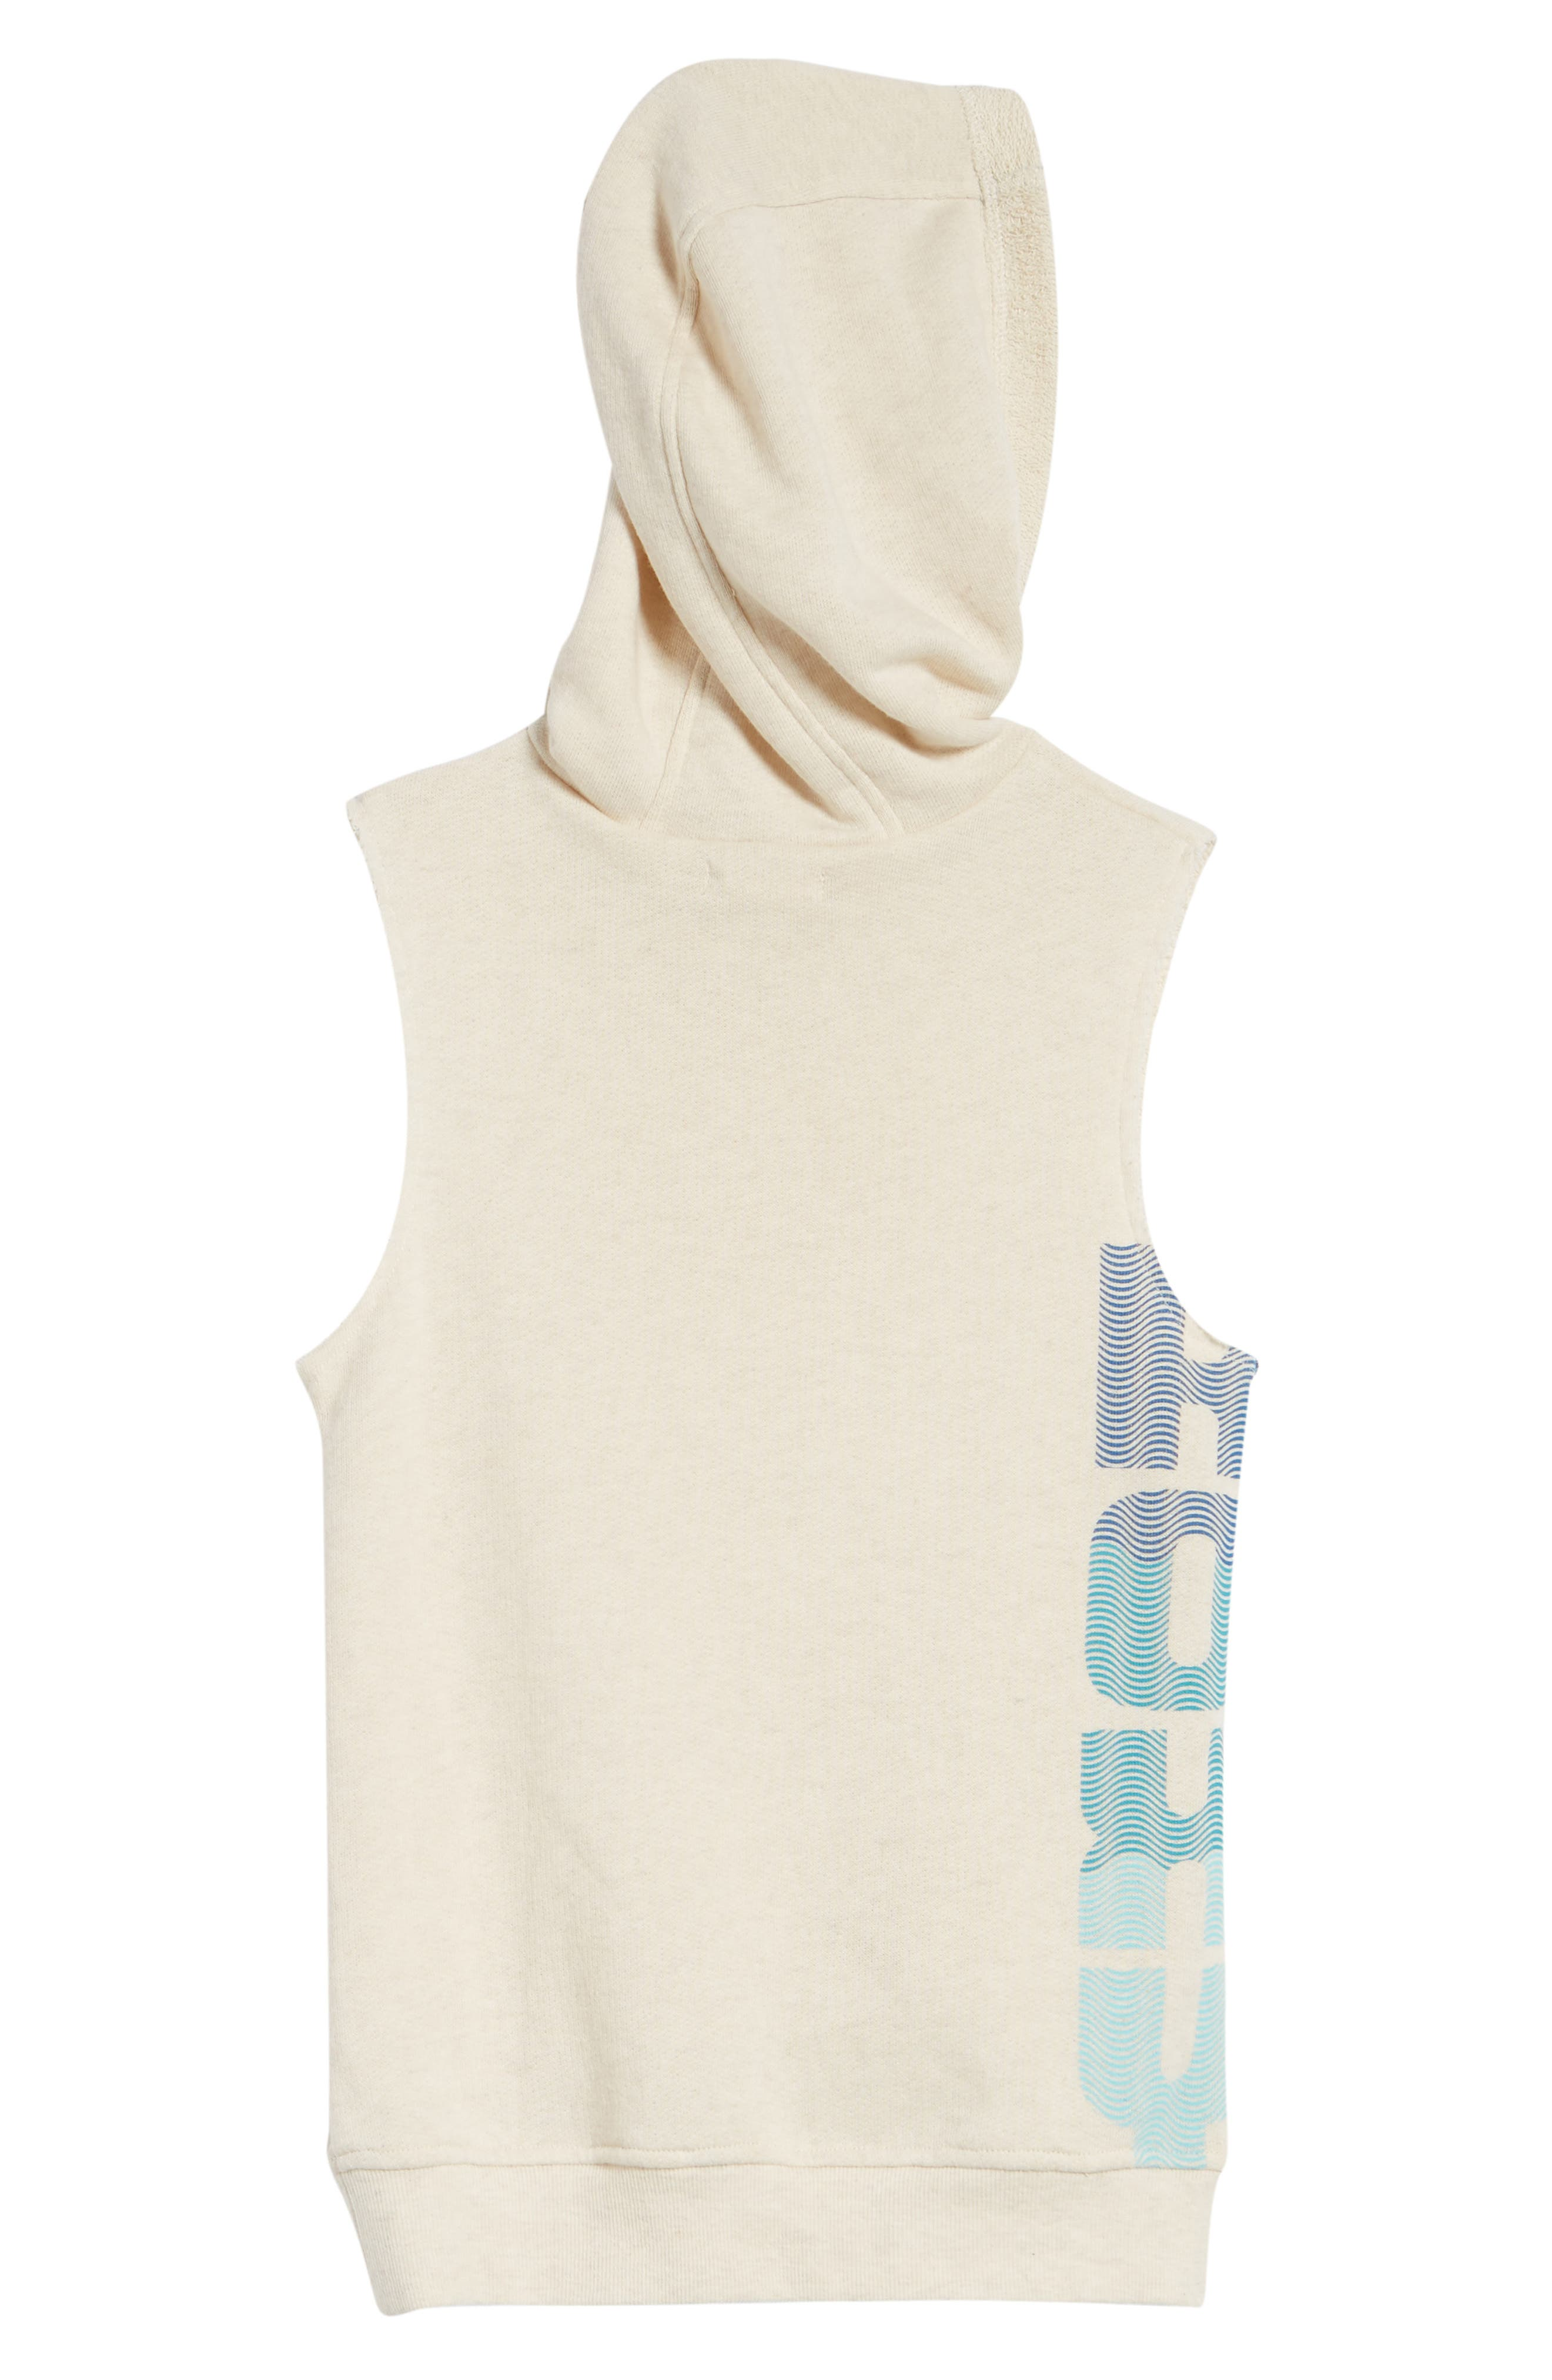 Falling Melody Sleeveless Hoodie,                             Alternate thumbnail 2, color,                             907